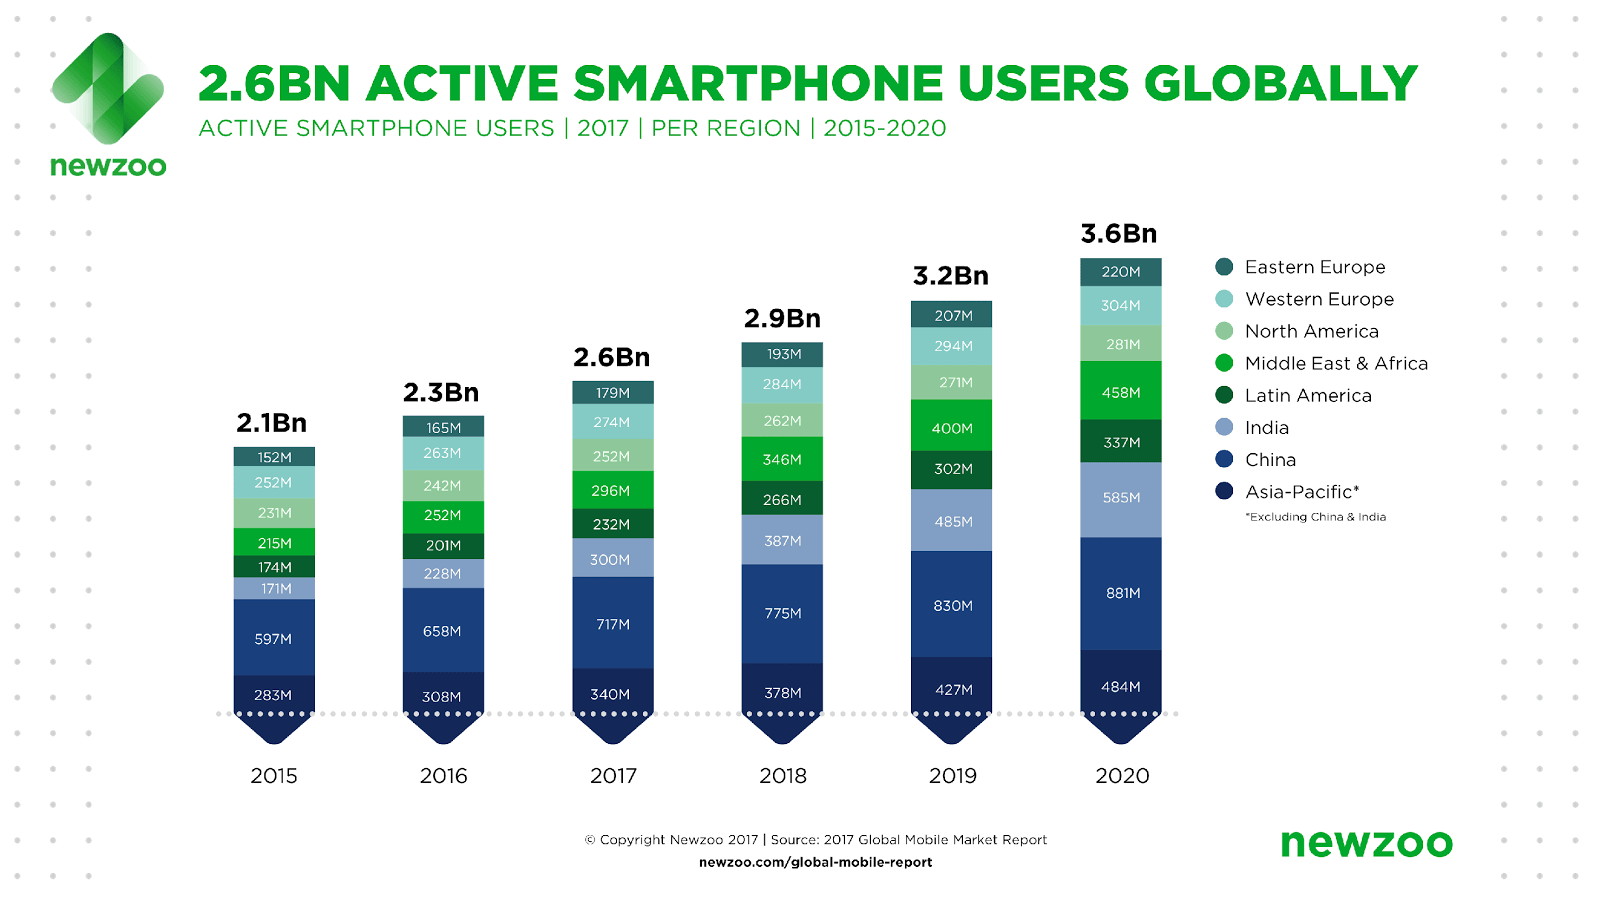 Active Smartphone users